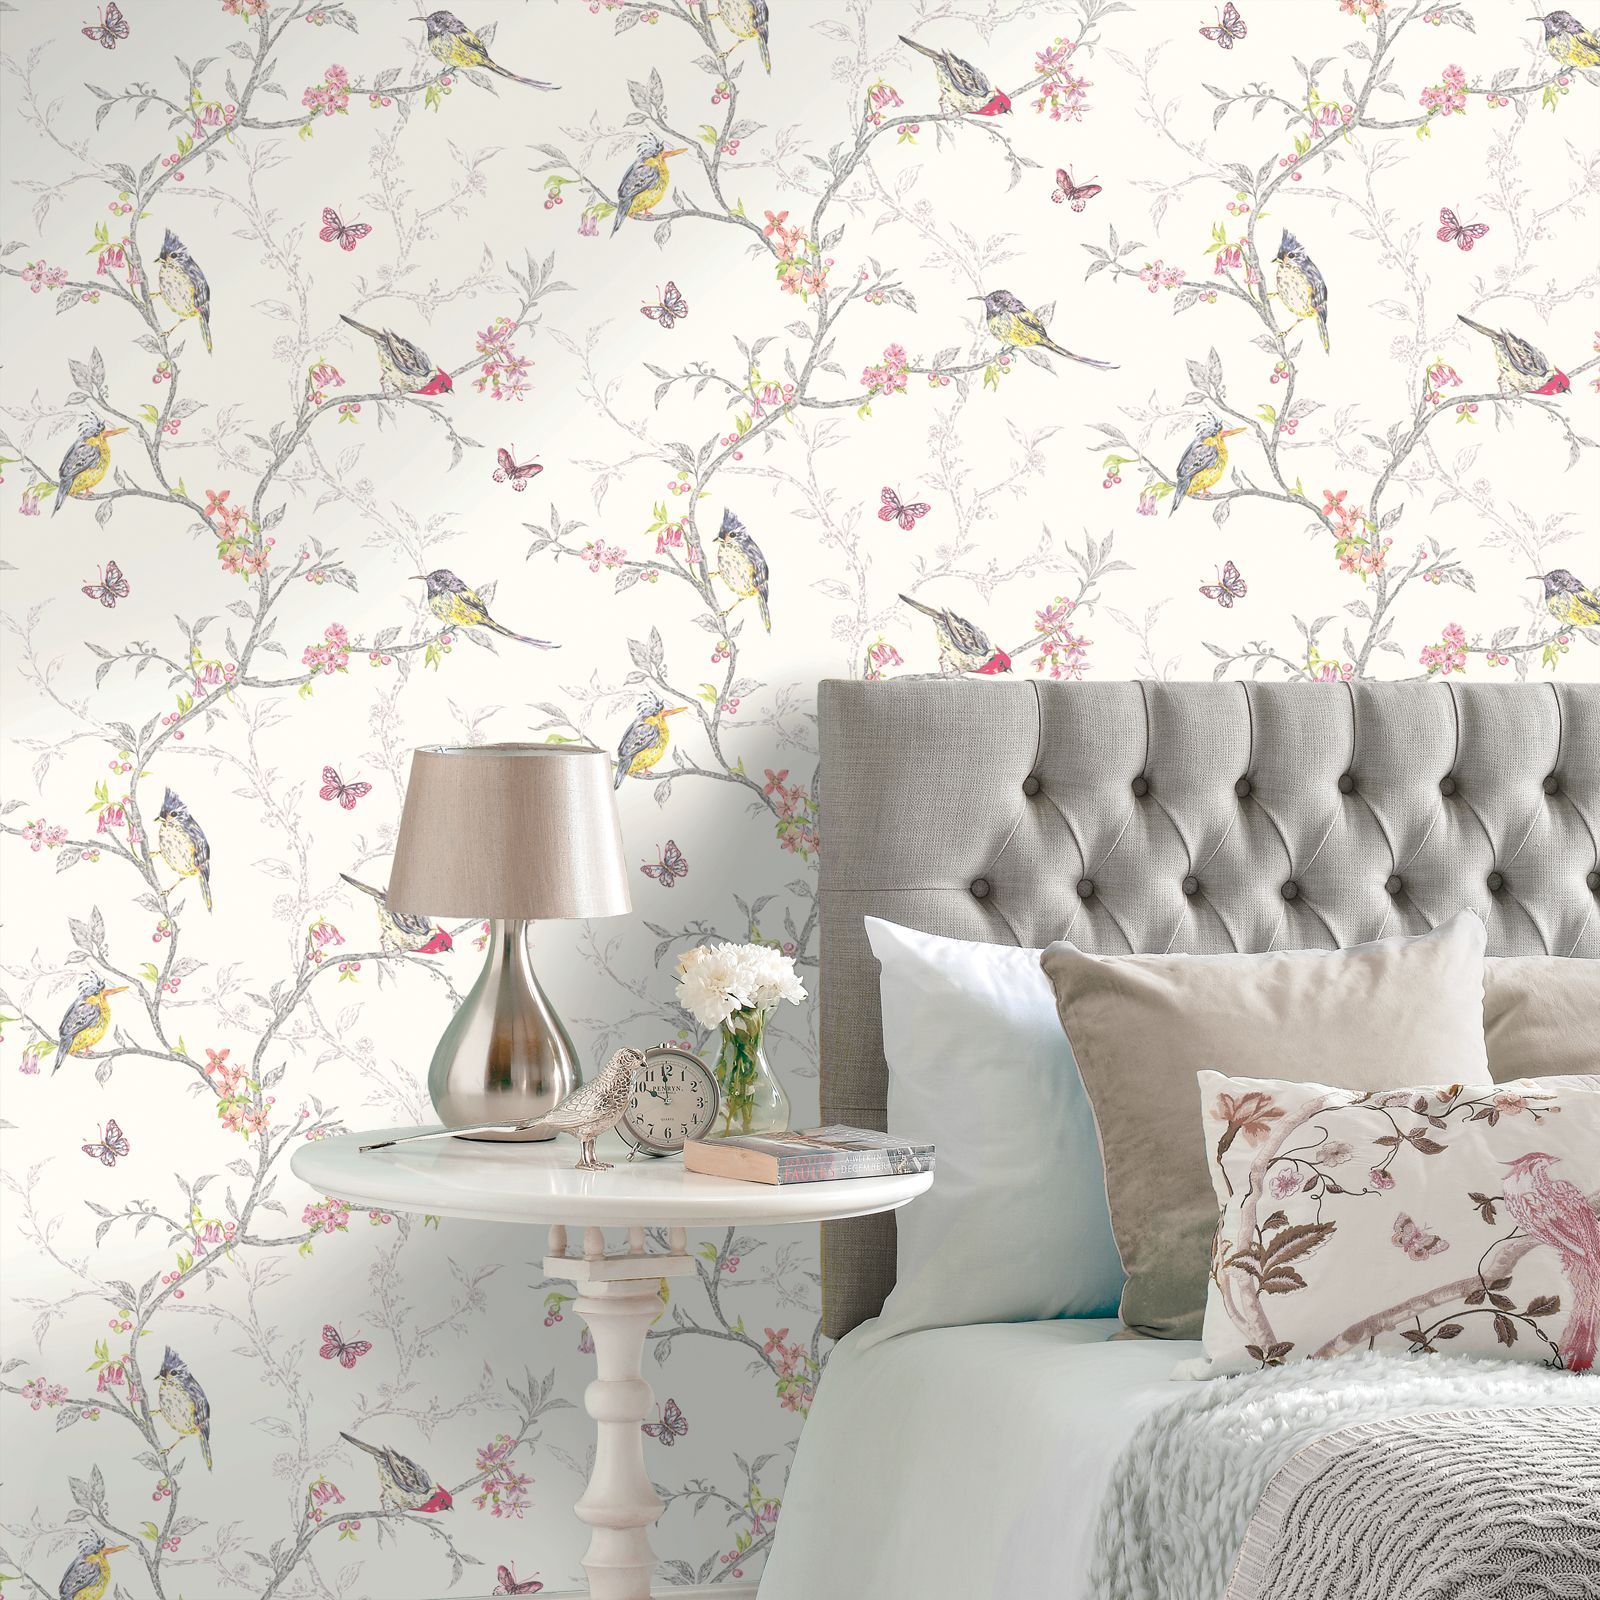 HOLDEN PHOEBE BIRDS WALLPAPER ROOM DECOR - CREAM, GREY, WHITE, TEAL ...